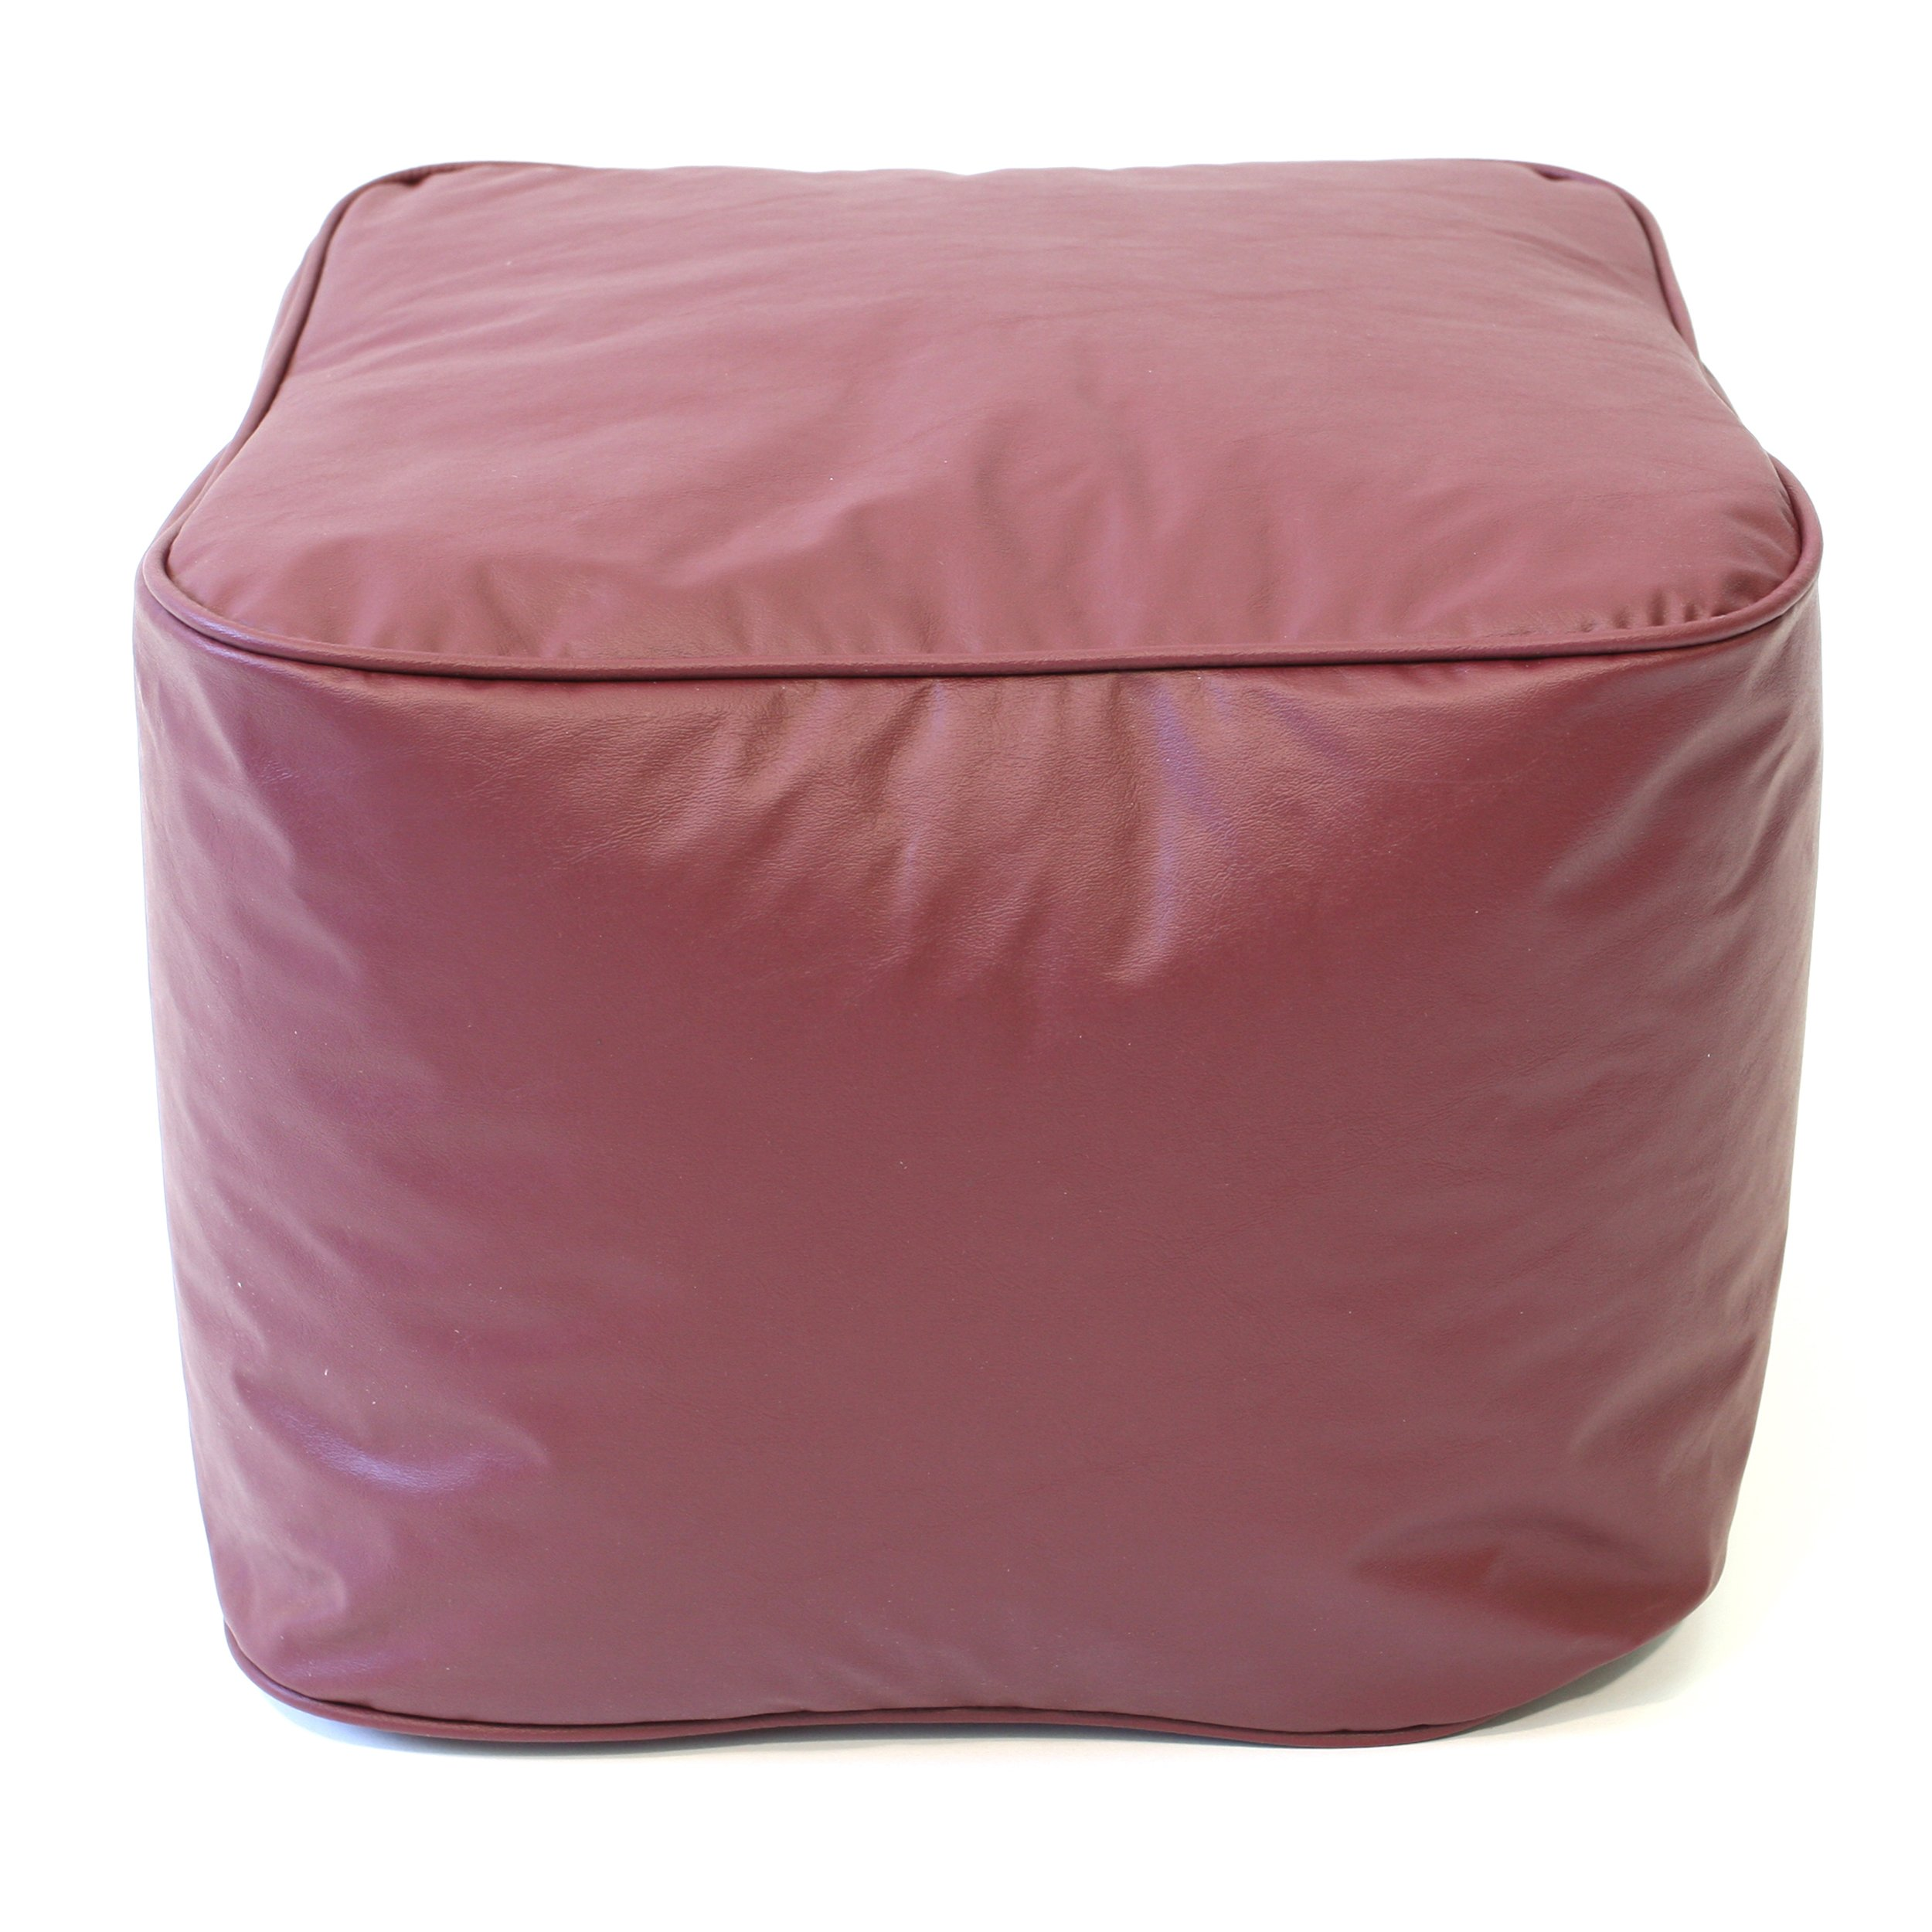 Gold Medal Bean Bags Leather Look Vinyl Ottoman, Small, Wine